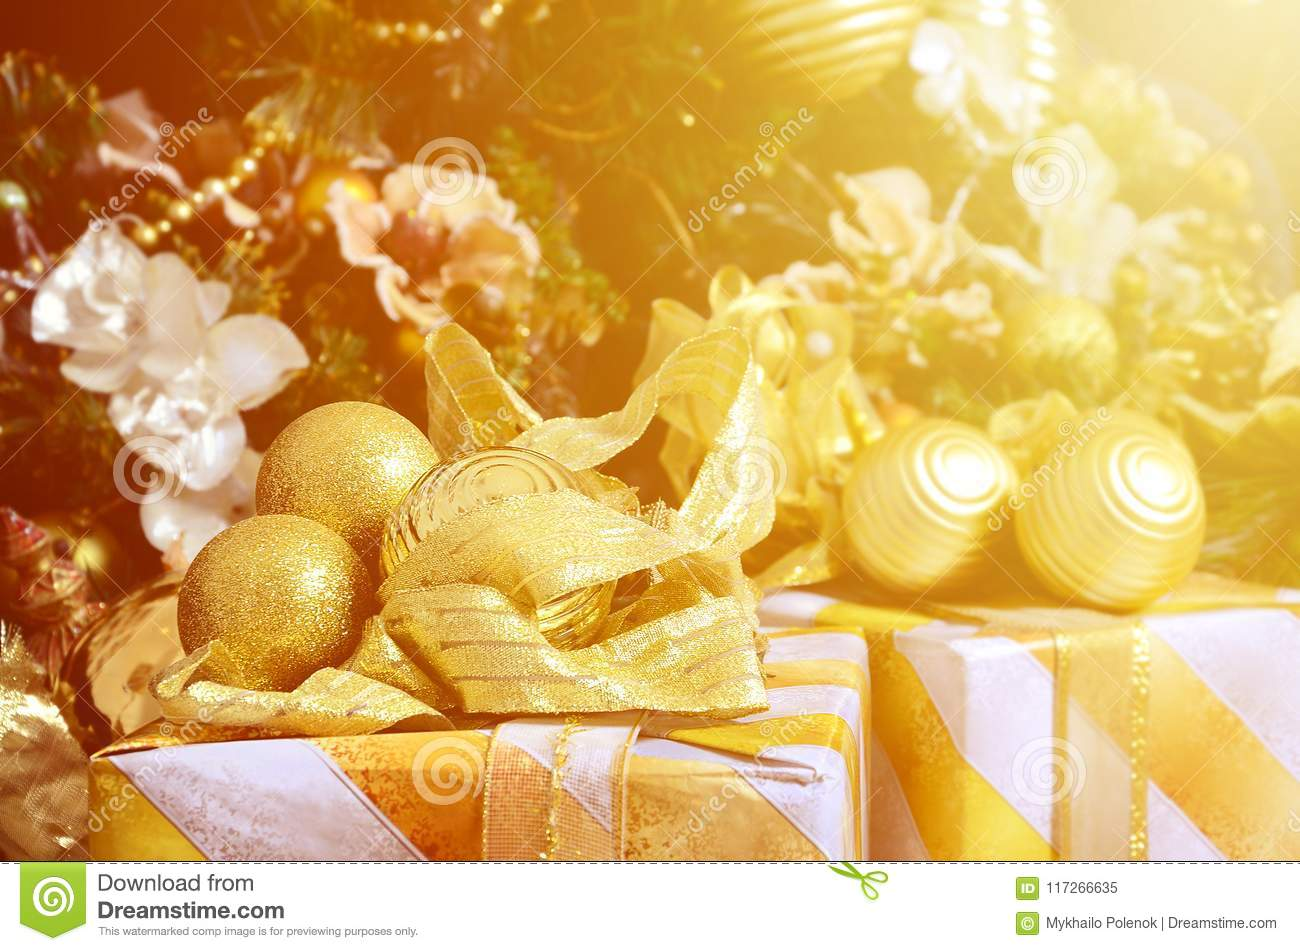 Photo Of Luxury Gift Boxes Under Christmas Tree, New Year ...